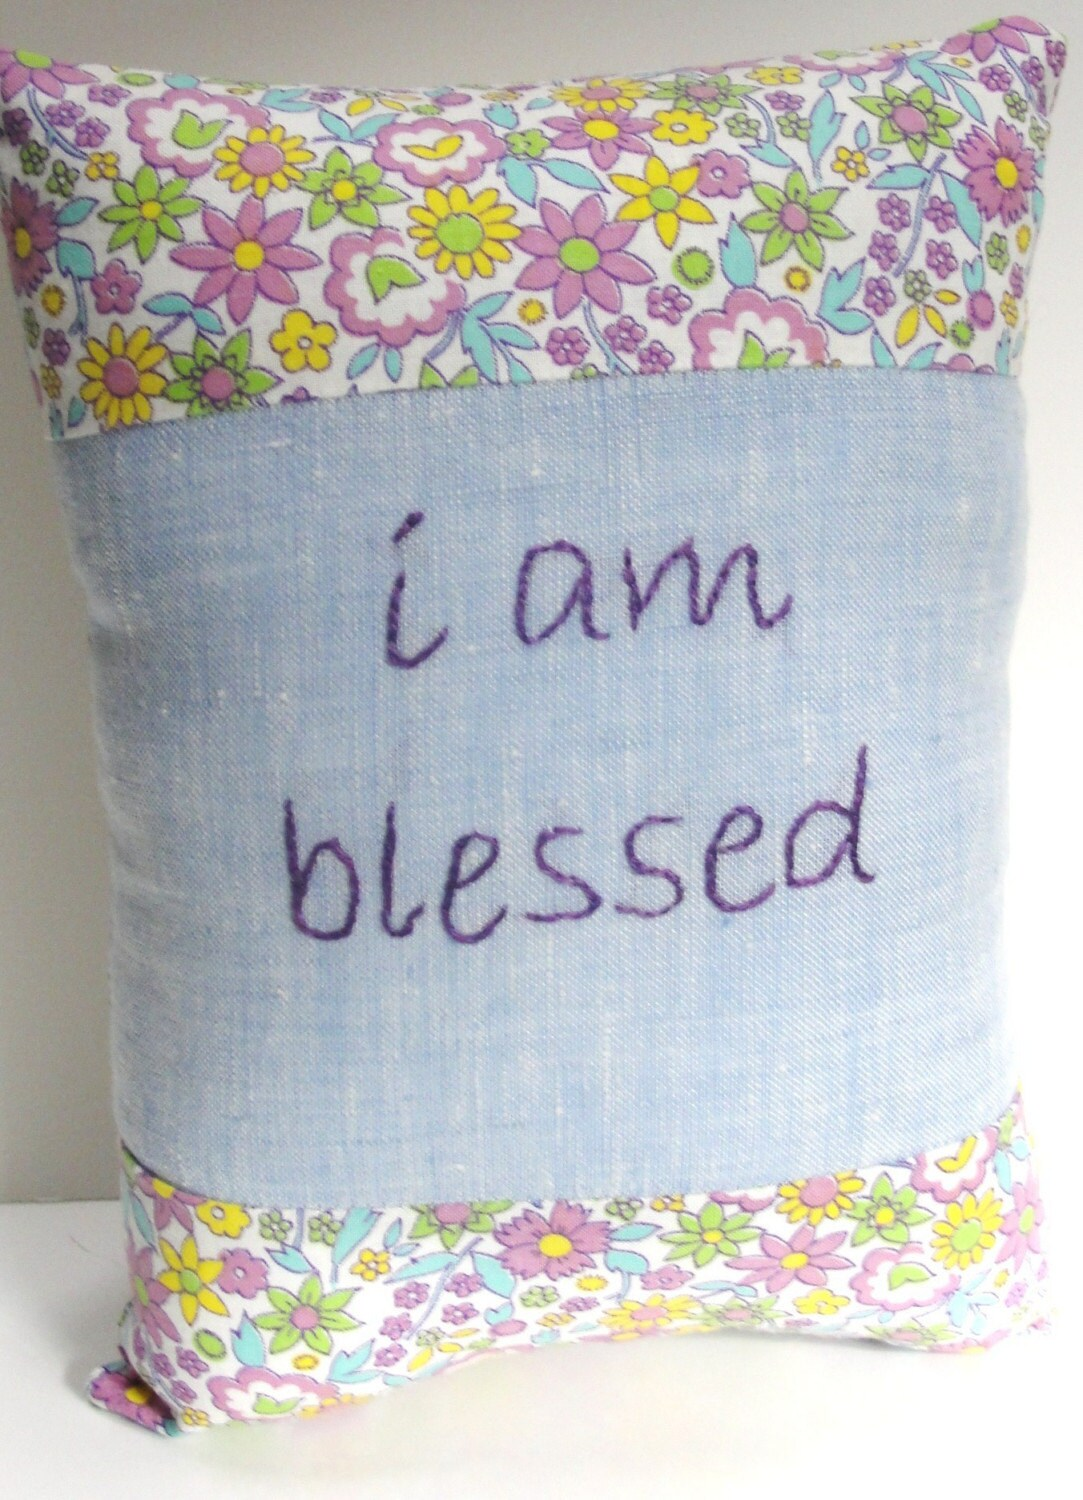 I Am Blessed hand-embroidere...